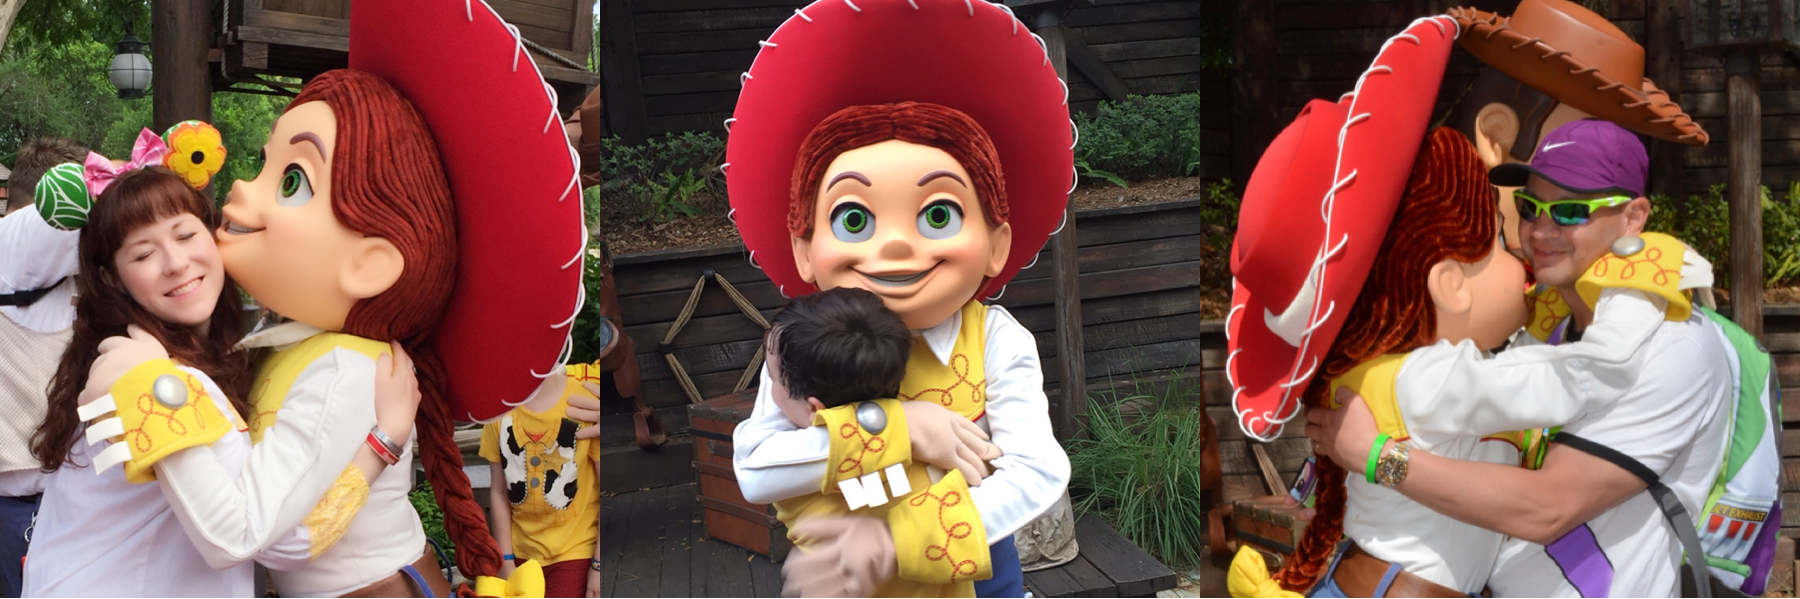 Toy Story at WDW: Construction Begins, Characters Face Cuts – Toy ...